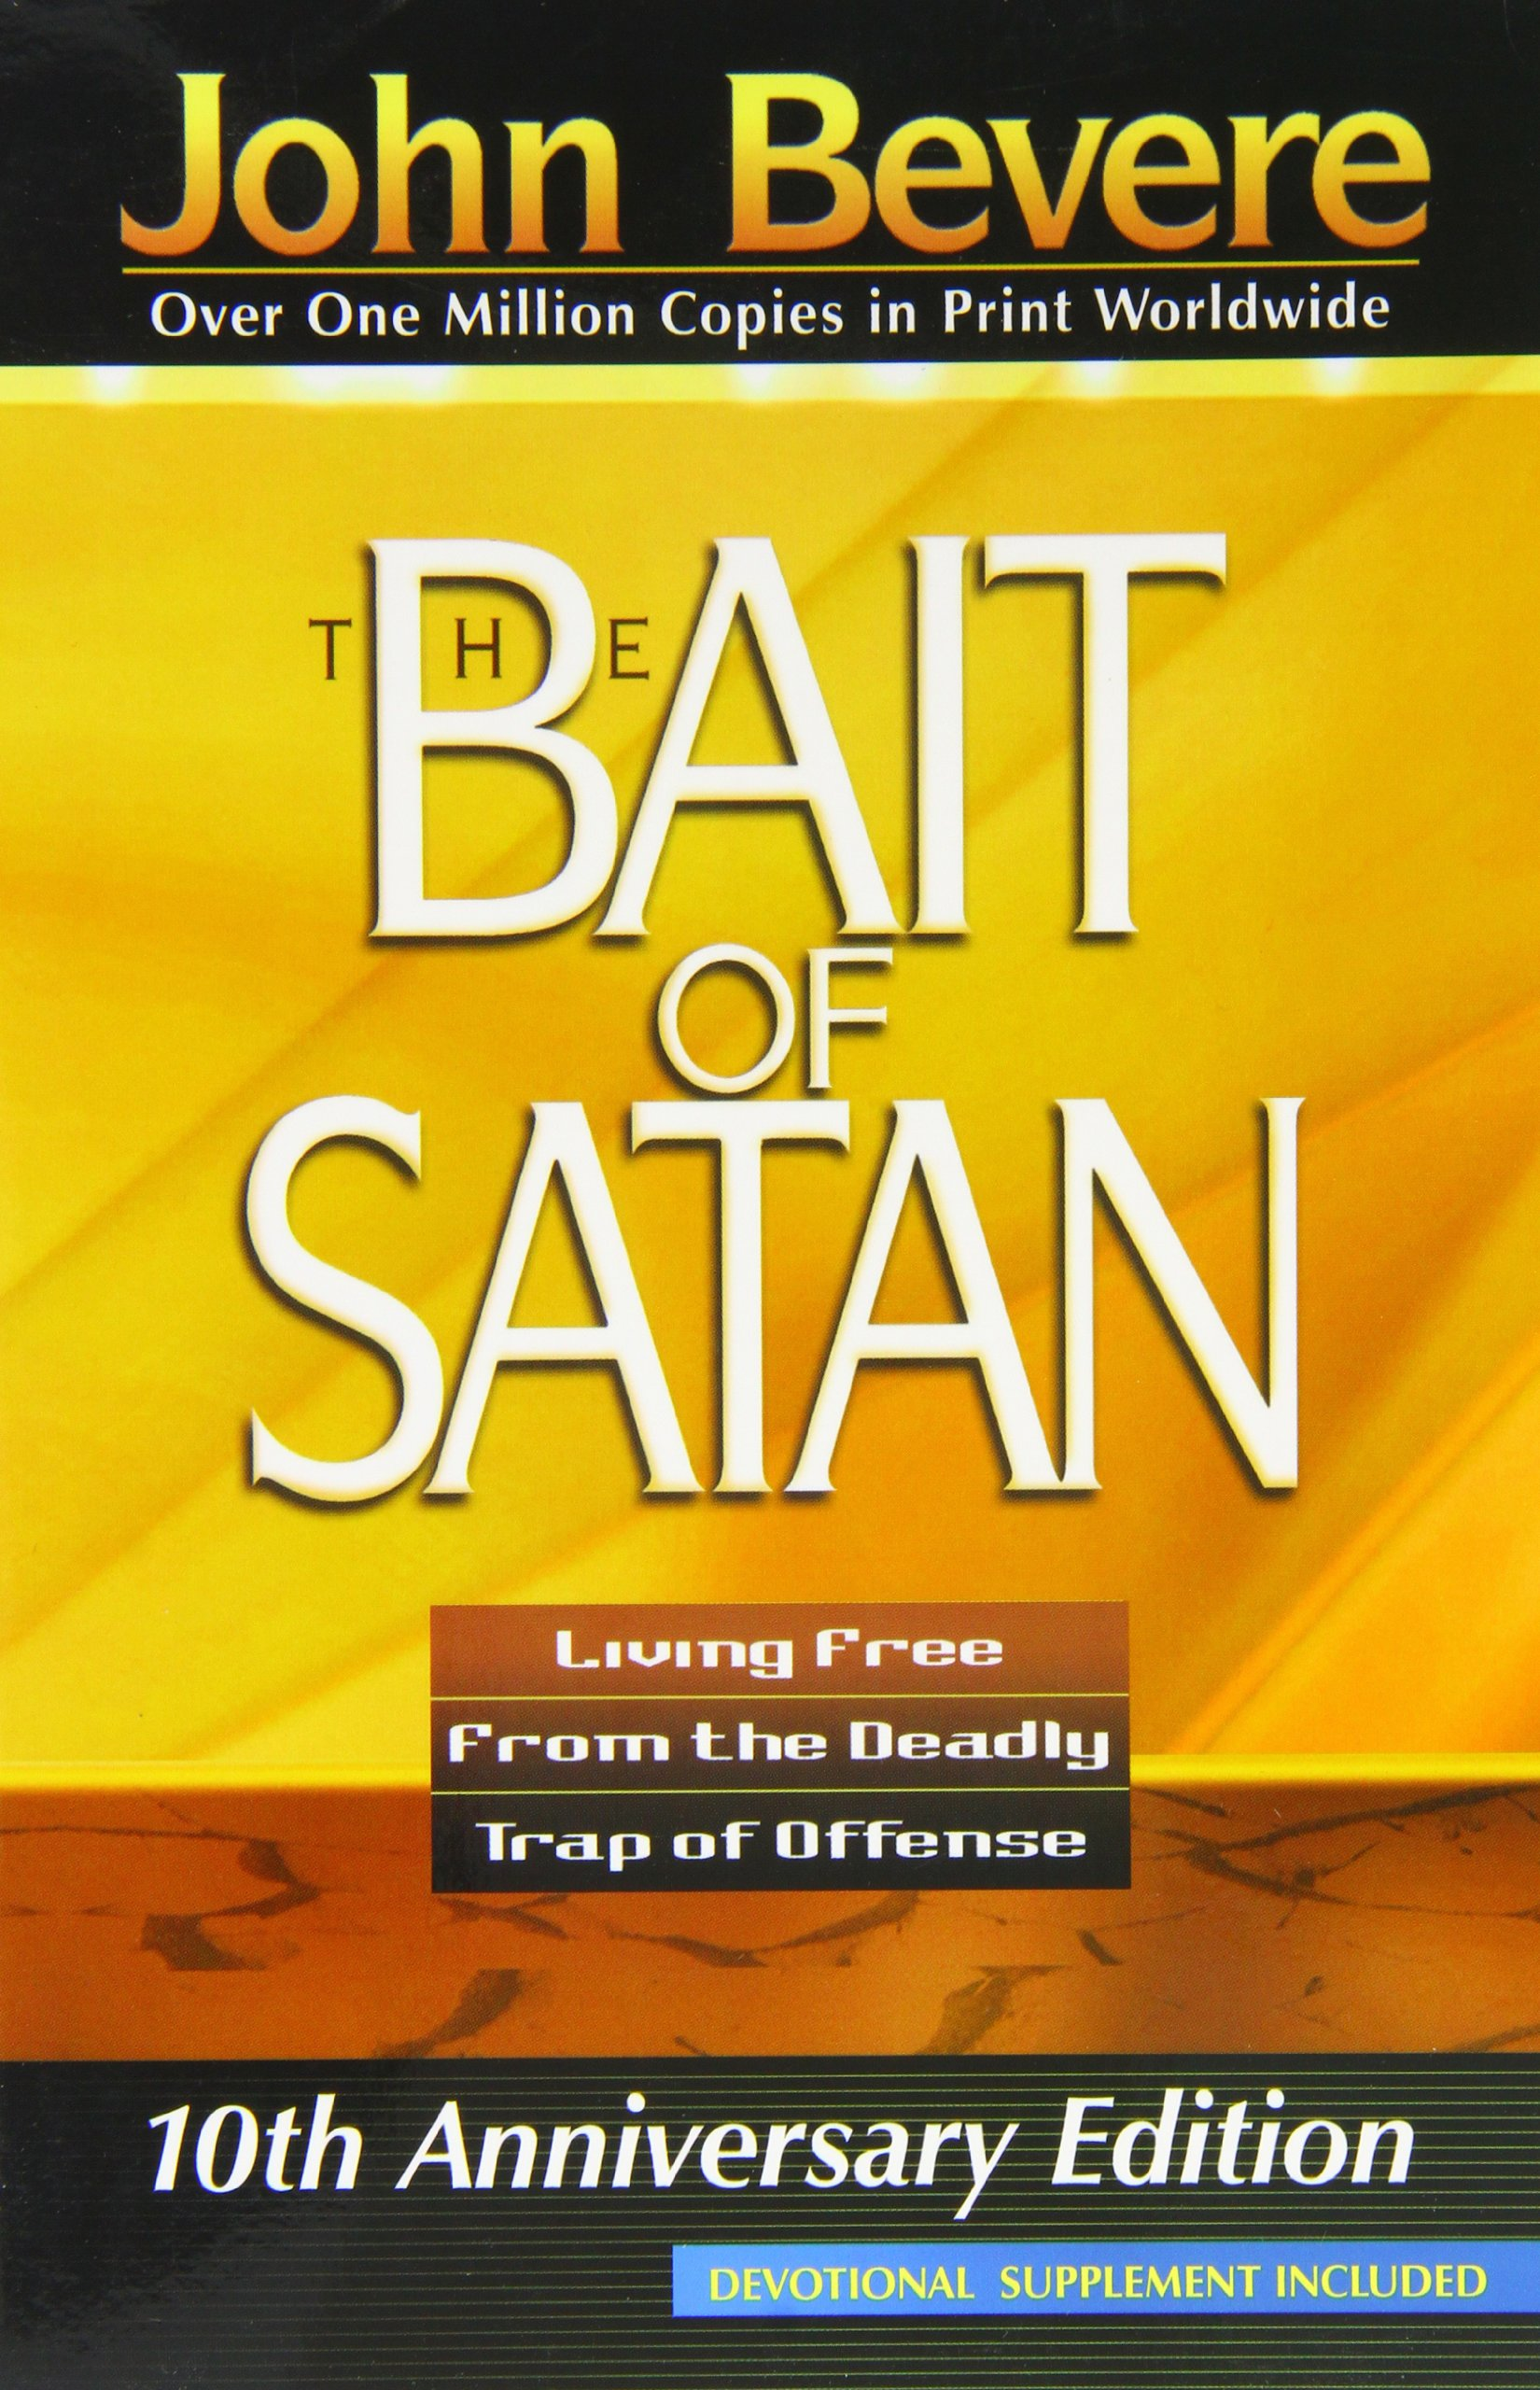 The bait of satan living free from the deadly trap of offense john the bait of satan living free from the deadly trap of offense john bevere 9781591854135 amazon books fandeluxe Gallery